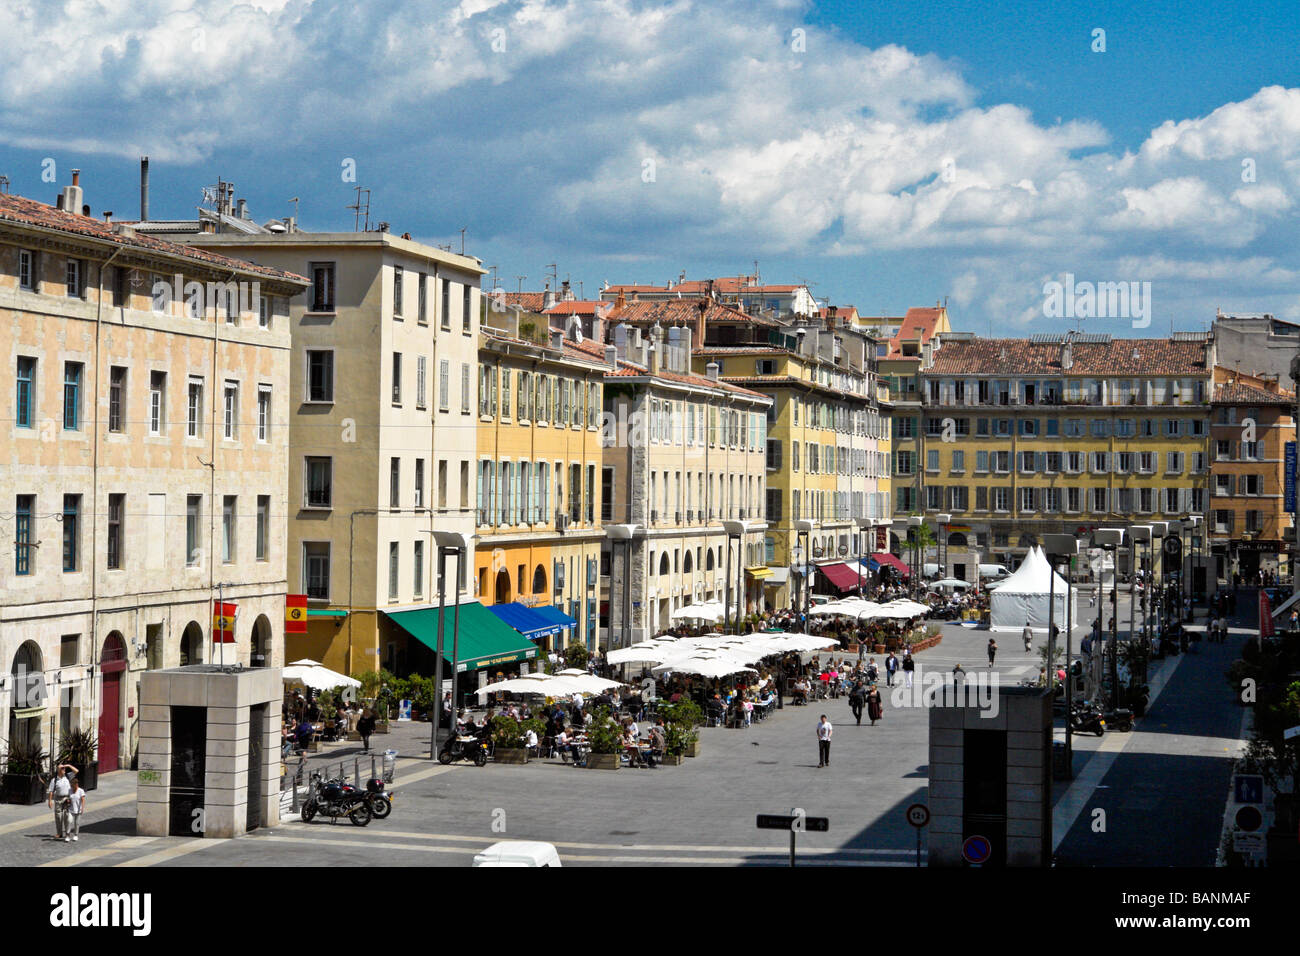 Place Aux Huiles, viewed from Montee Ludovic-Henri Monnier, Marseille - Stock Image